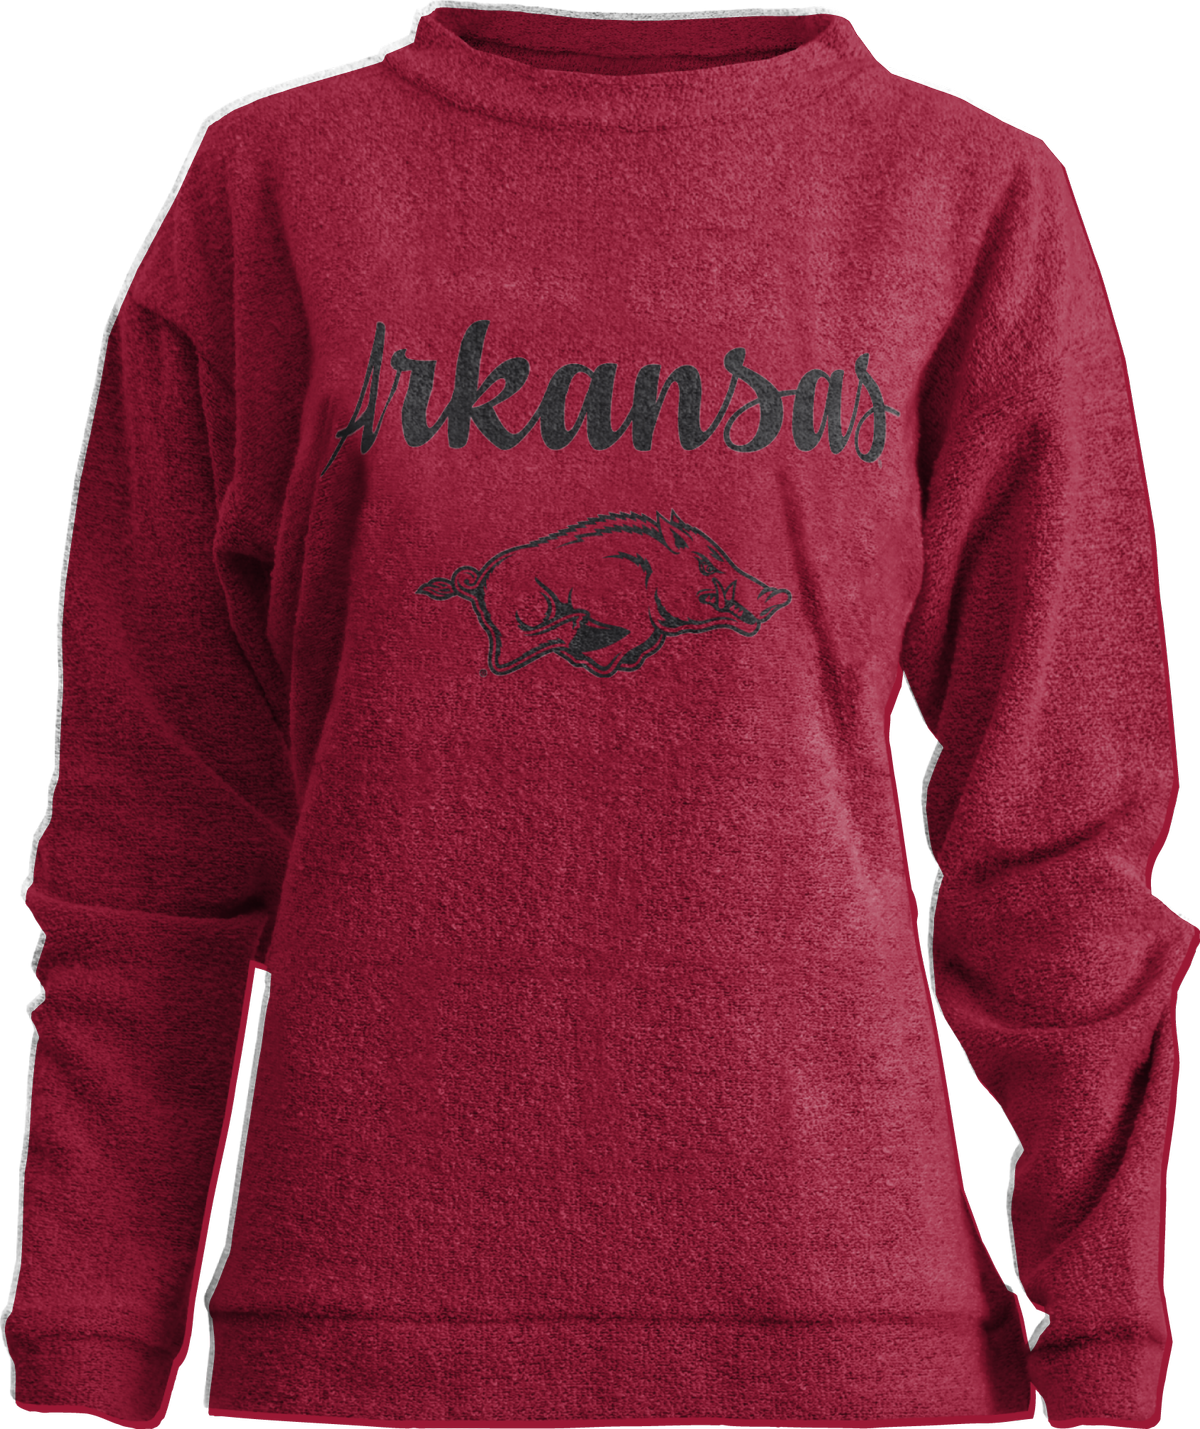 Comfy Terry Arkansas Sweatshirt